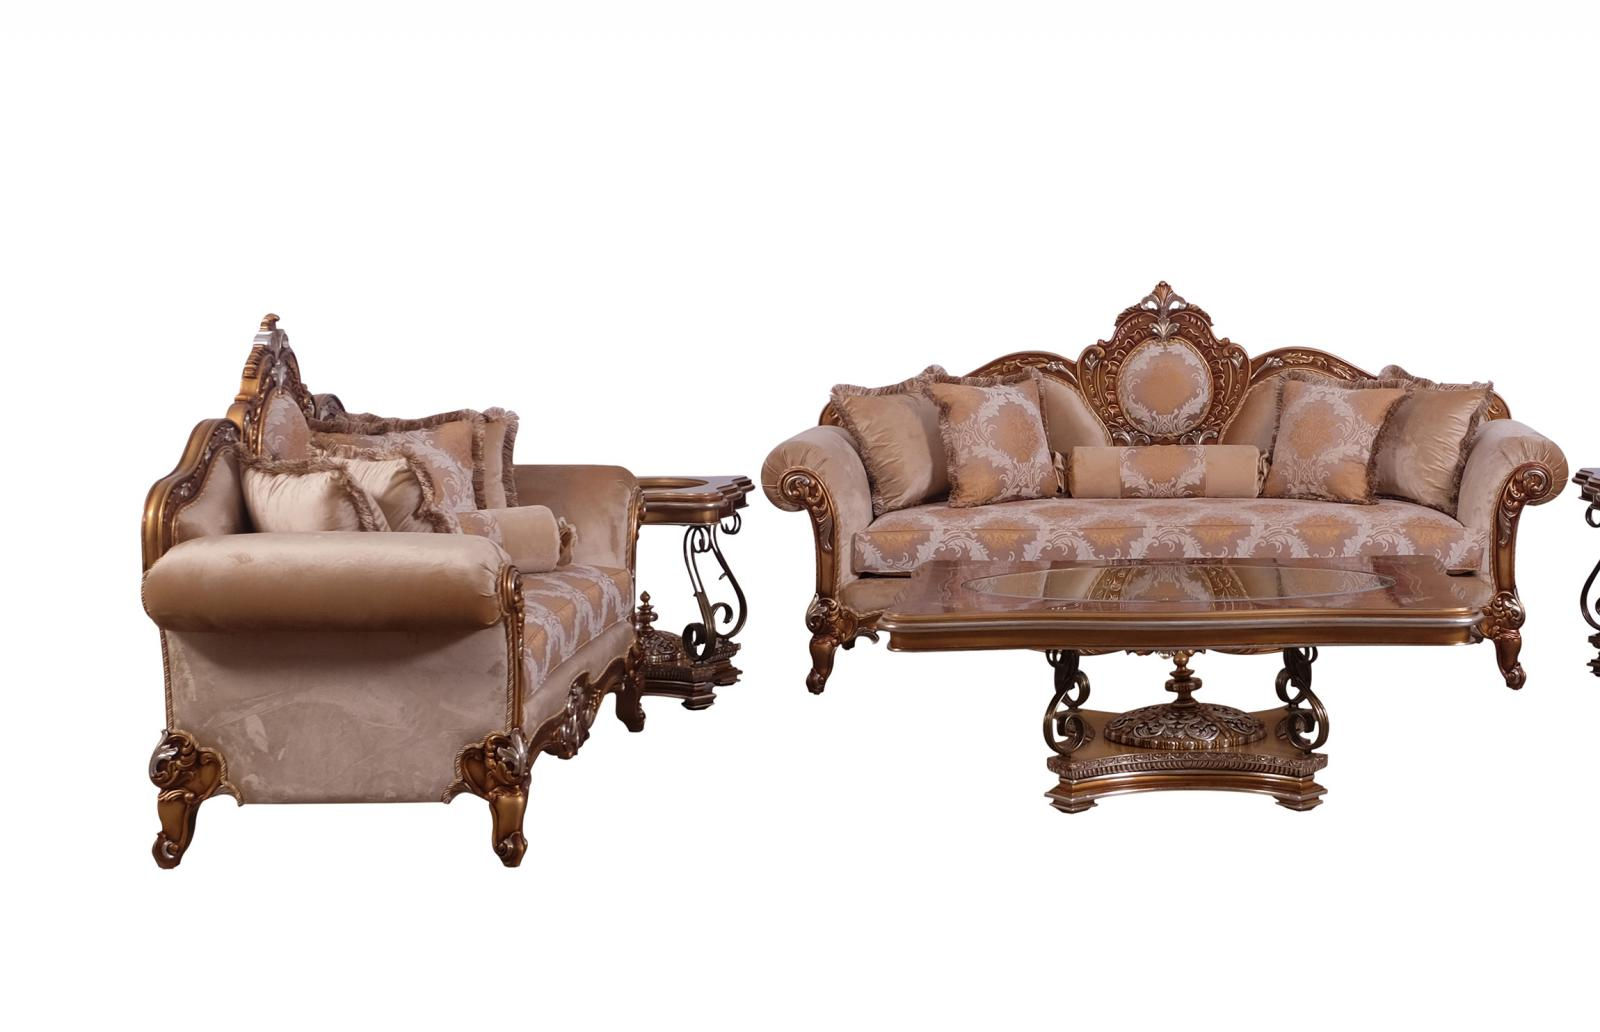 Classic  Traditional Brown  Gold  Silver Wood  Solid Hardwood and Fabric Sofa Set EUROPEAN FURNITURE 41026-S-Set-2